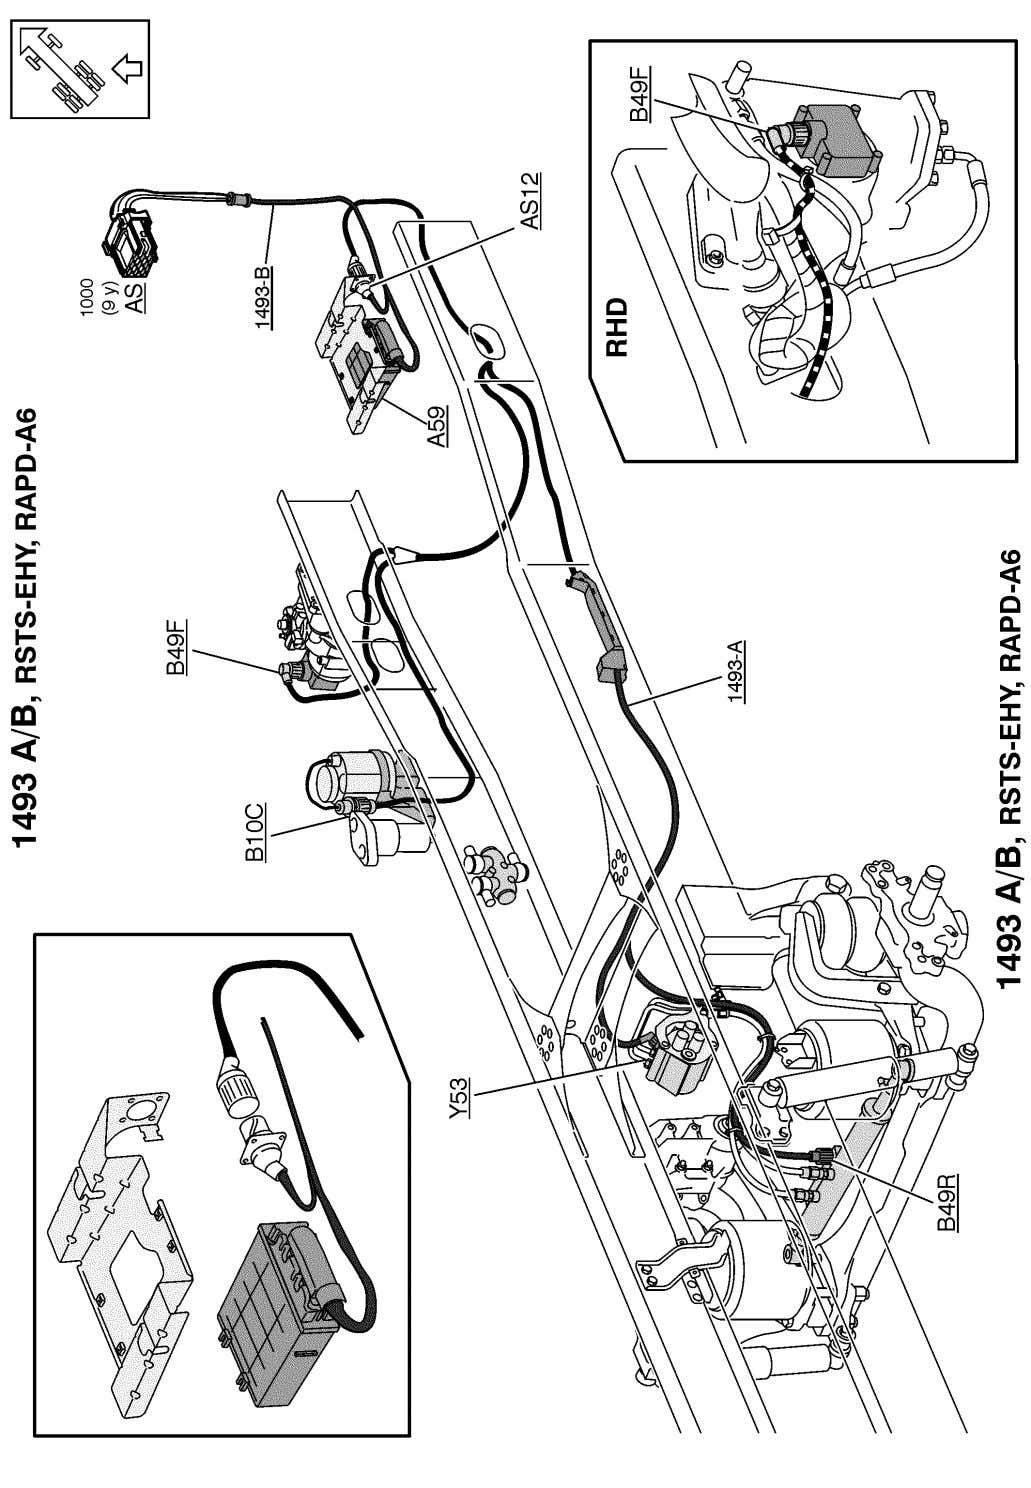 T3059949 Wiring diagram Page 209 (298)